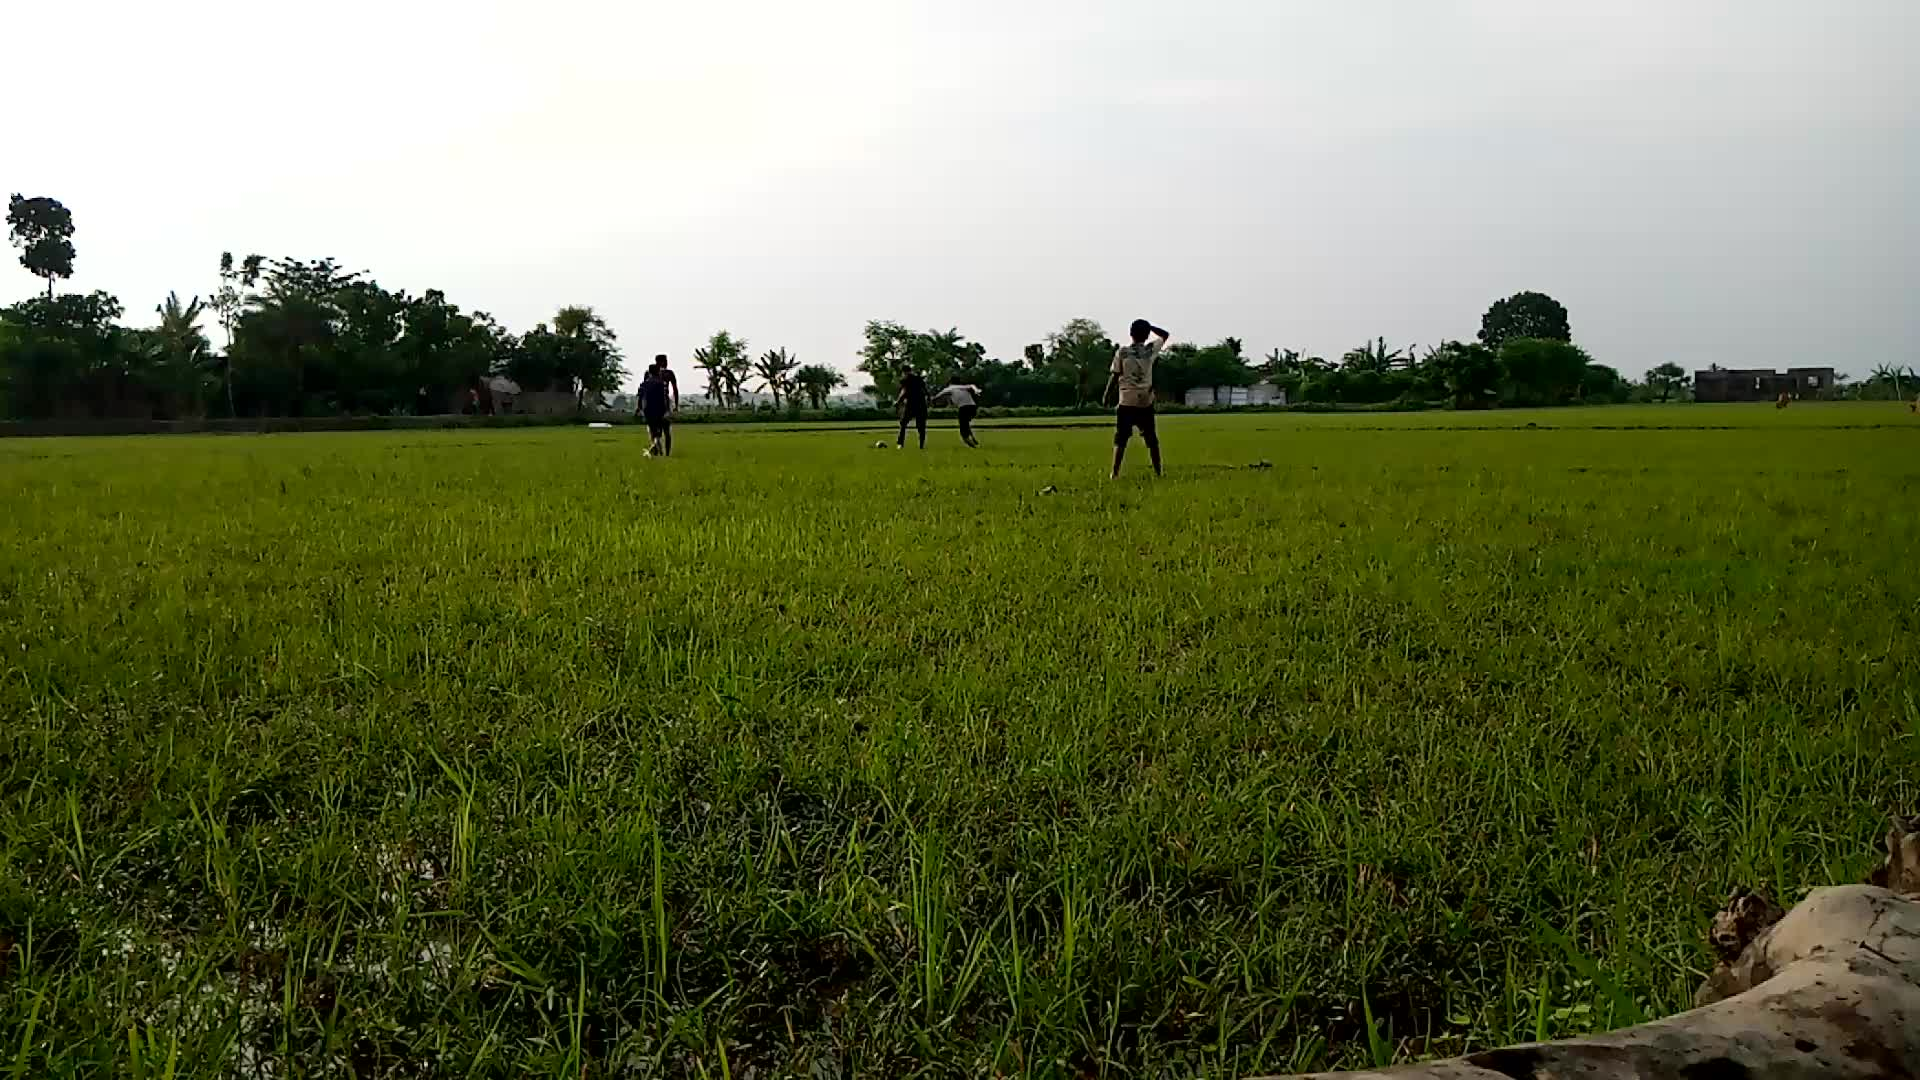 Playing football in a rural environment